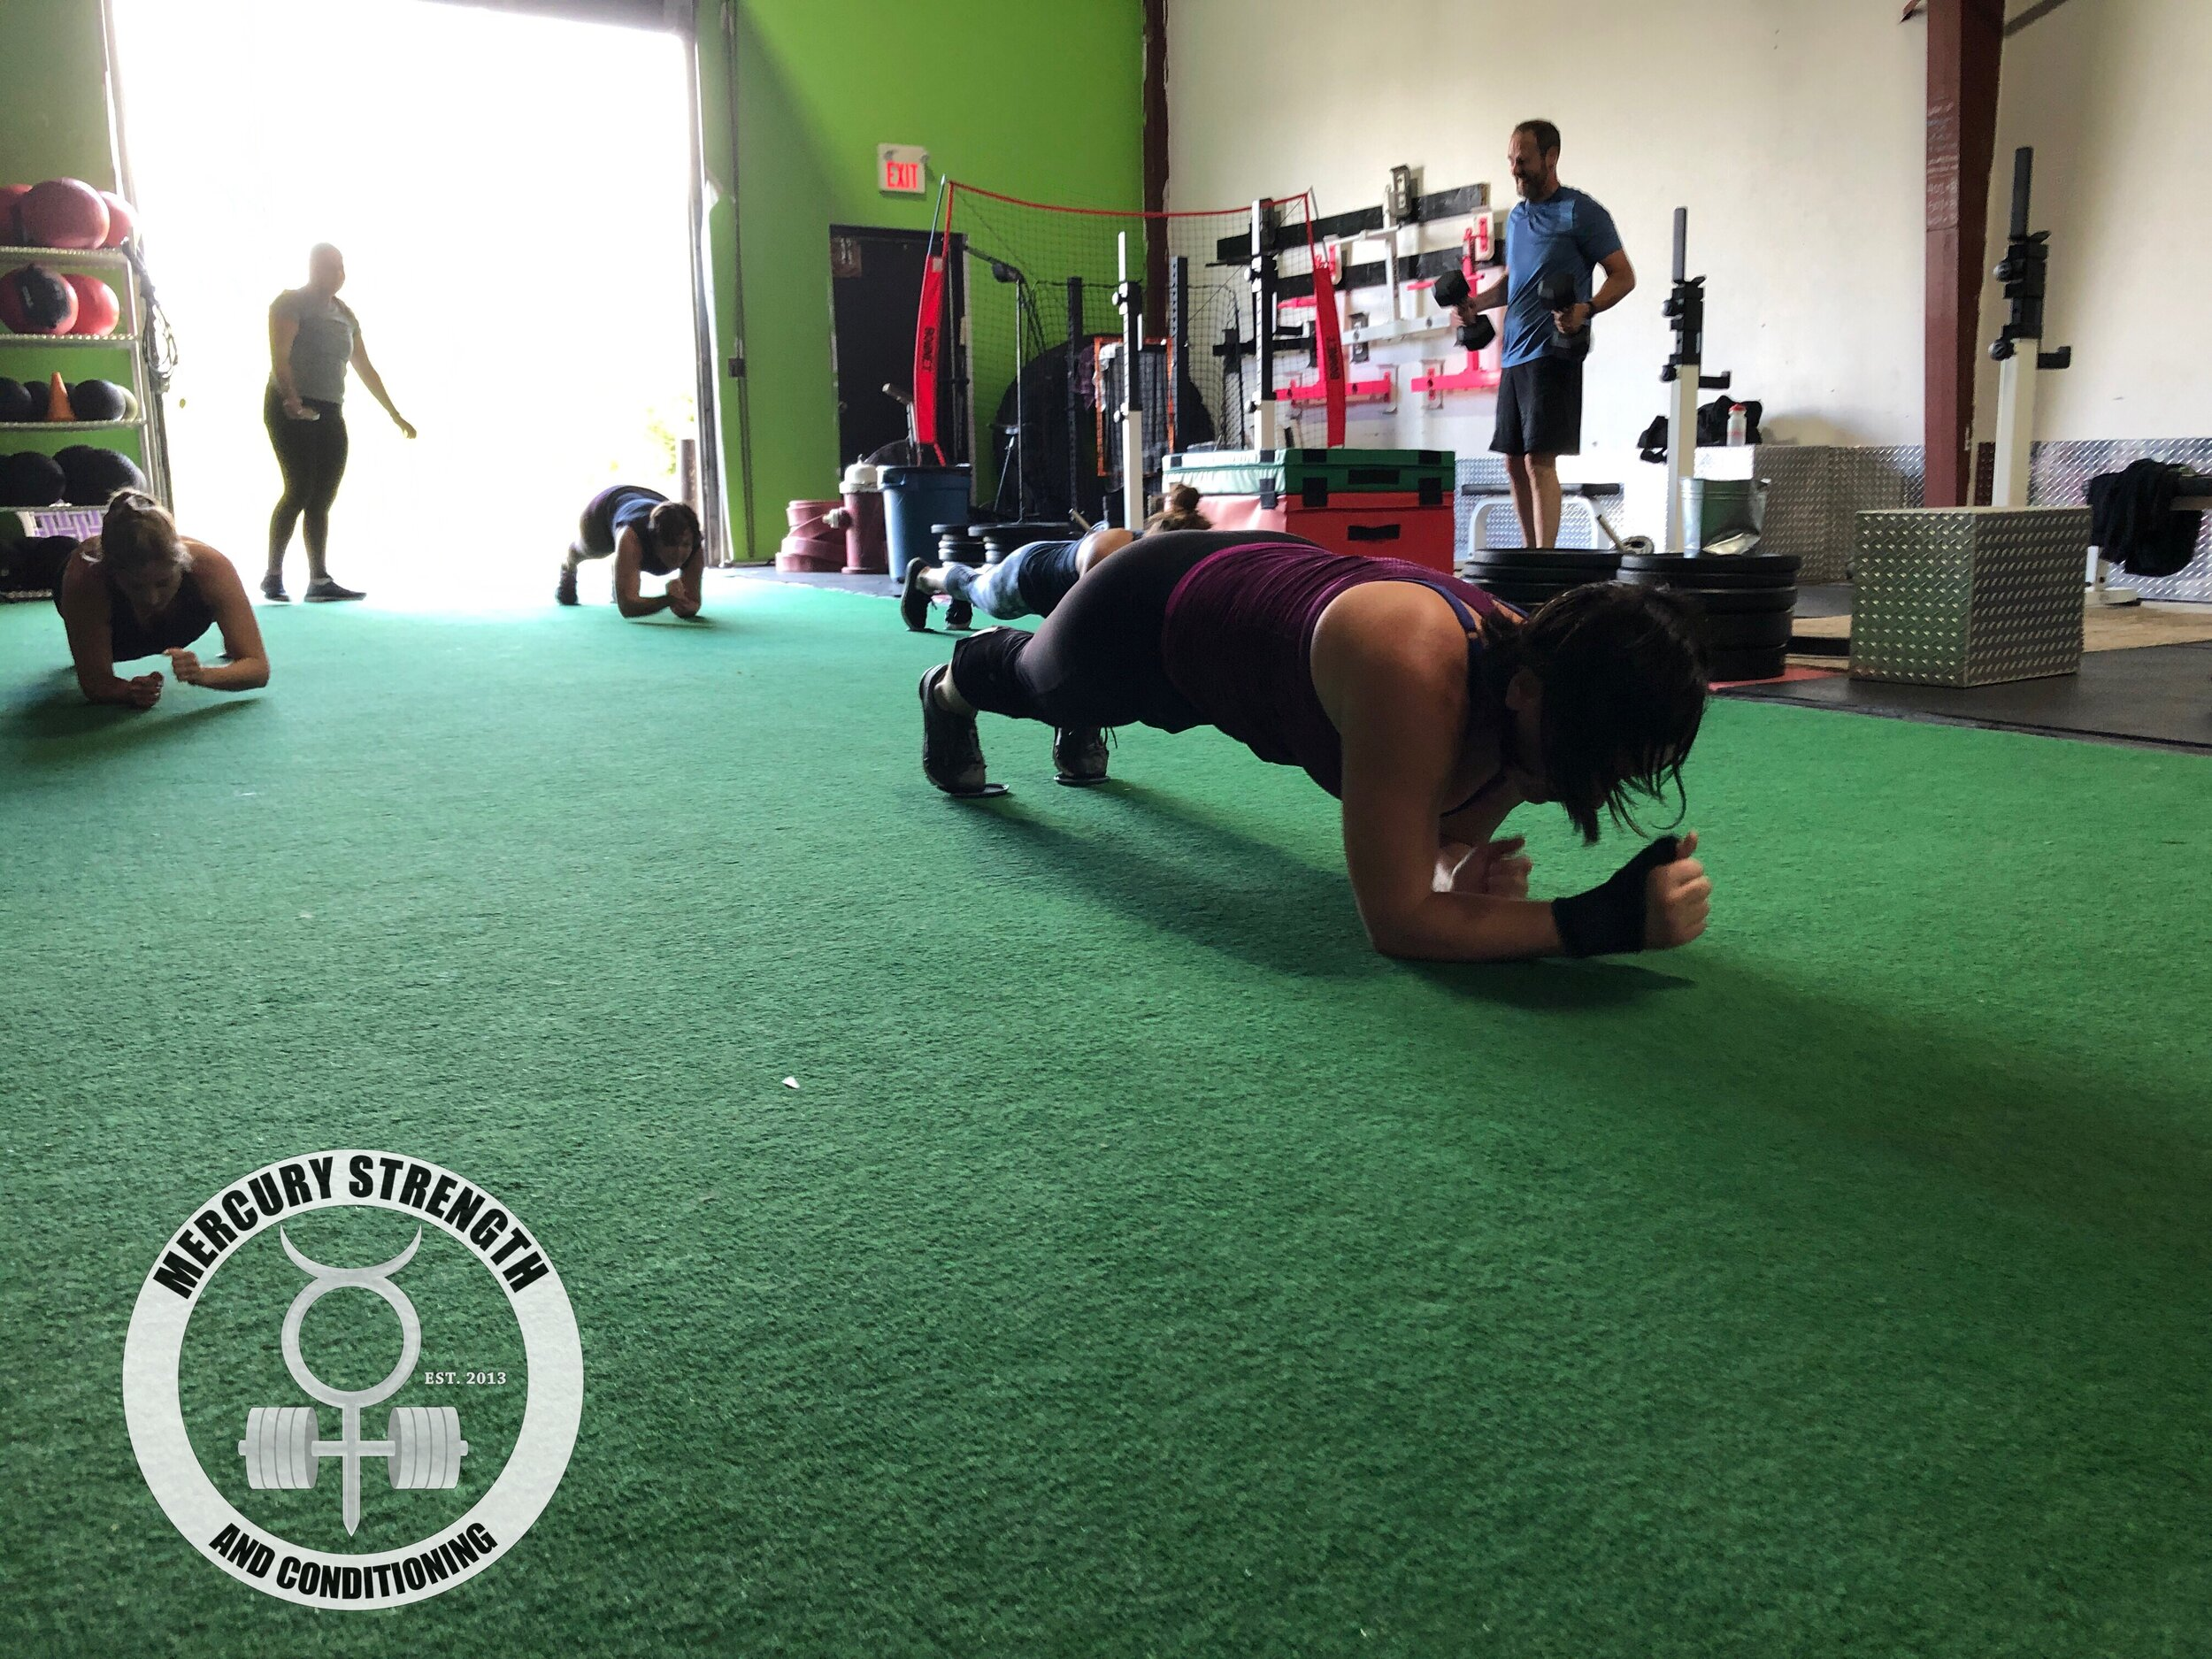 Lindsey leading the Saturday pack with some gliding army crawls.